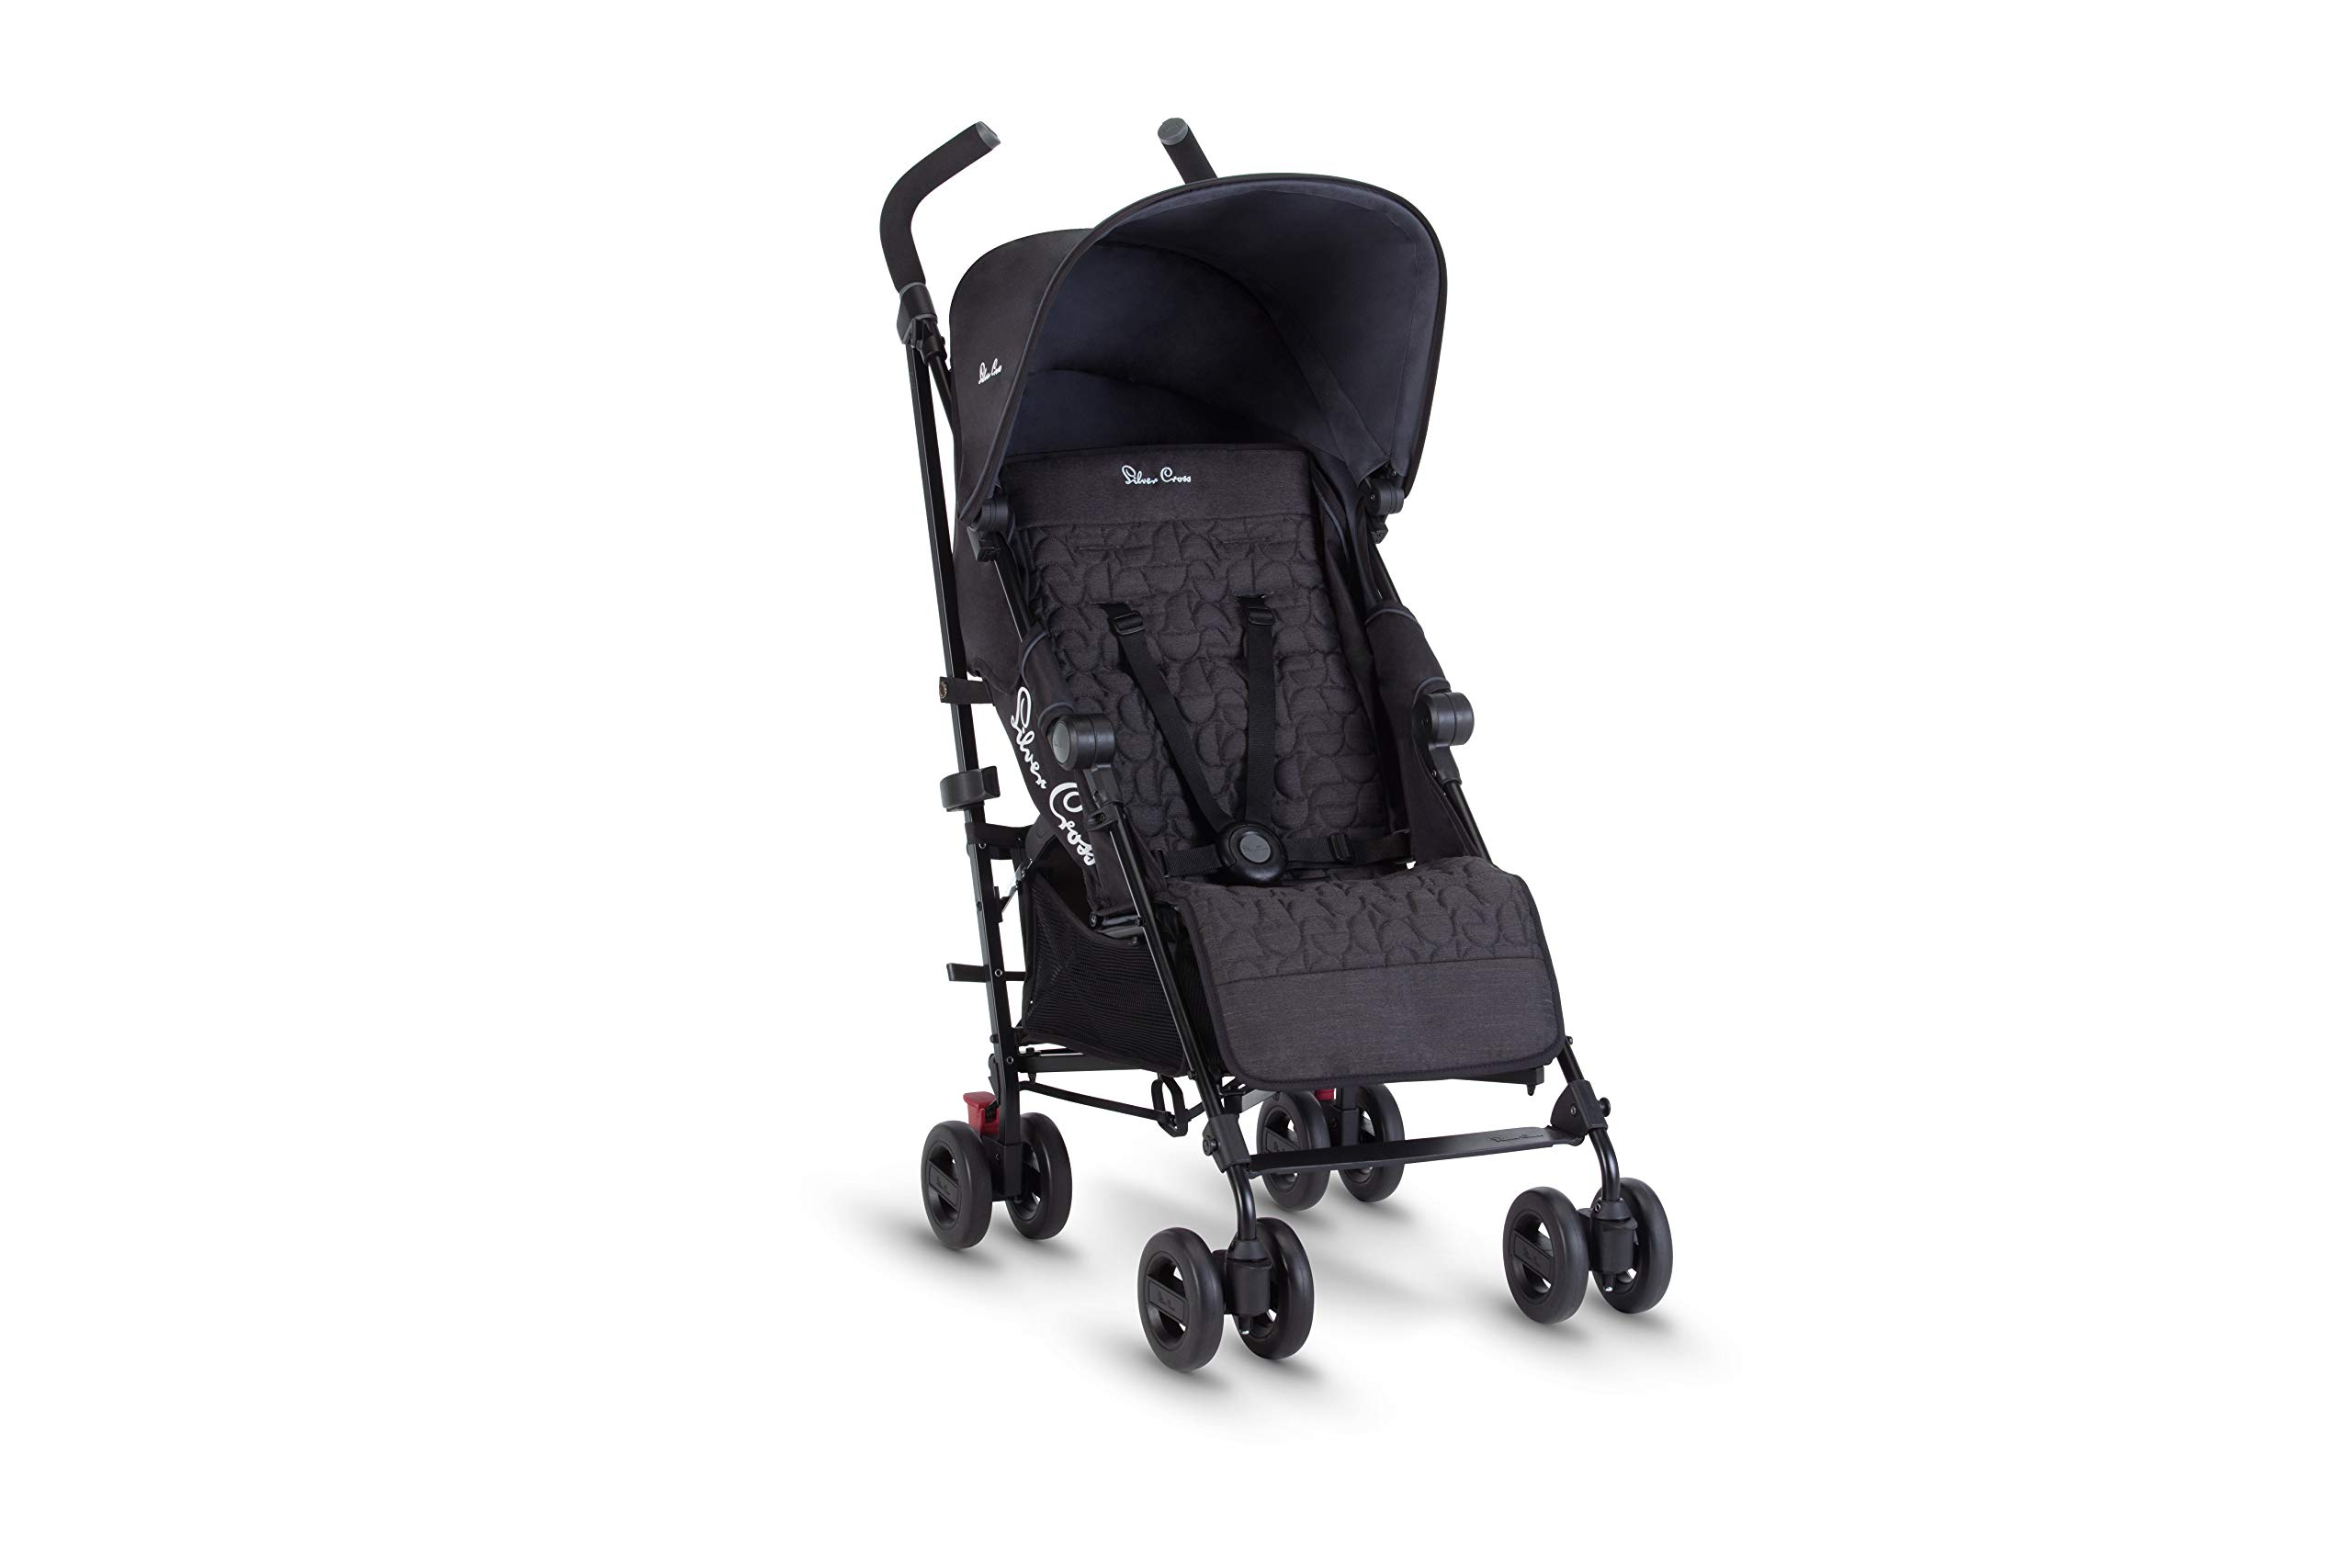 Silver Cross Zest Charcoal Black Silver Cross Ultra lightweight zest pushchair, weighing in at only 5.8kg, is suitable from birth up to 25kg It has a convenient one-hand fold, while the compact design makes it easy to store The fully lie-flat recline is best in its class 3